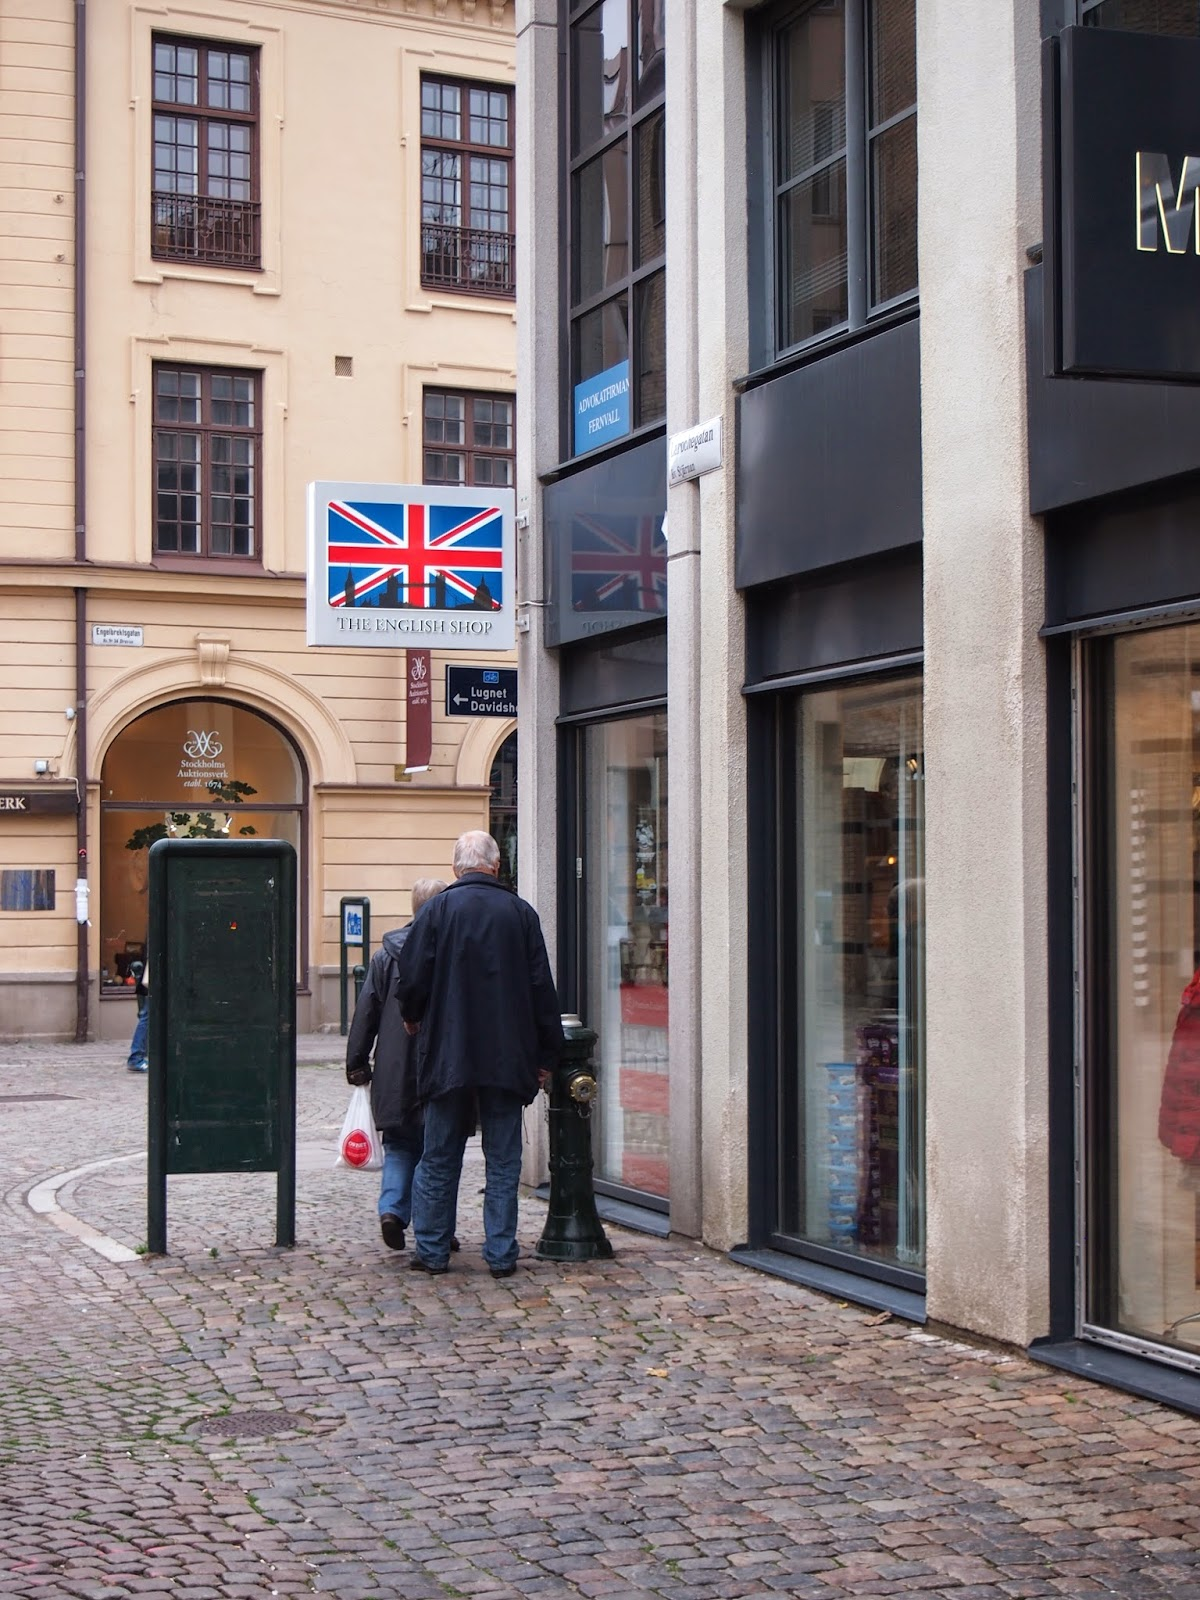 The English Shop in Malmo